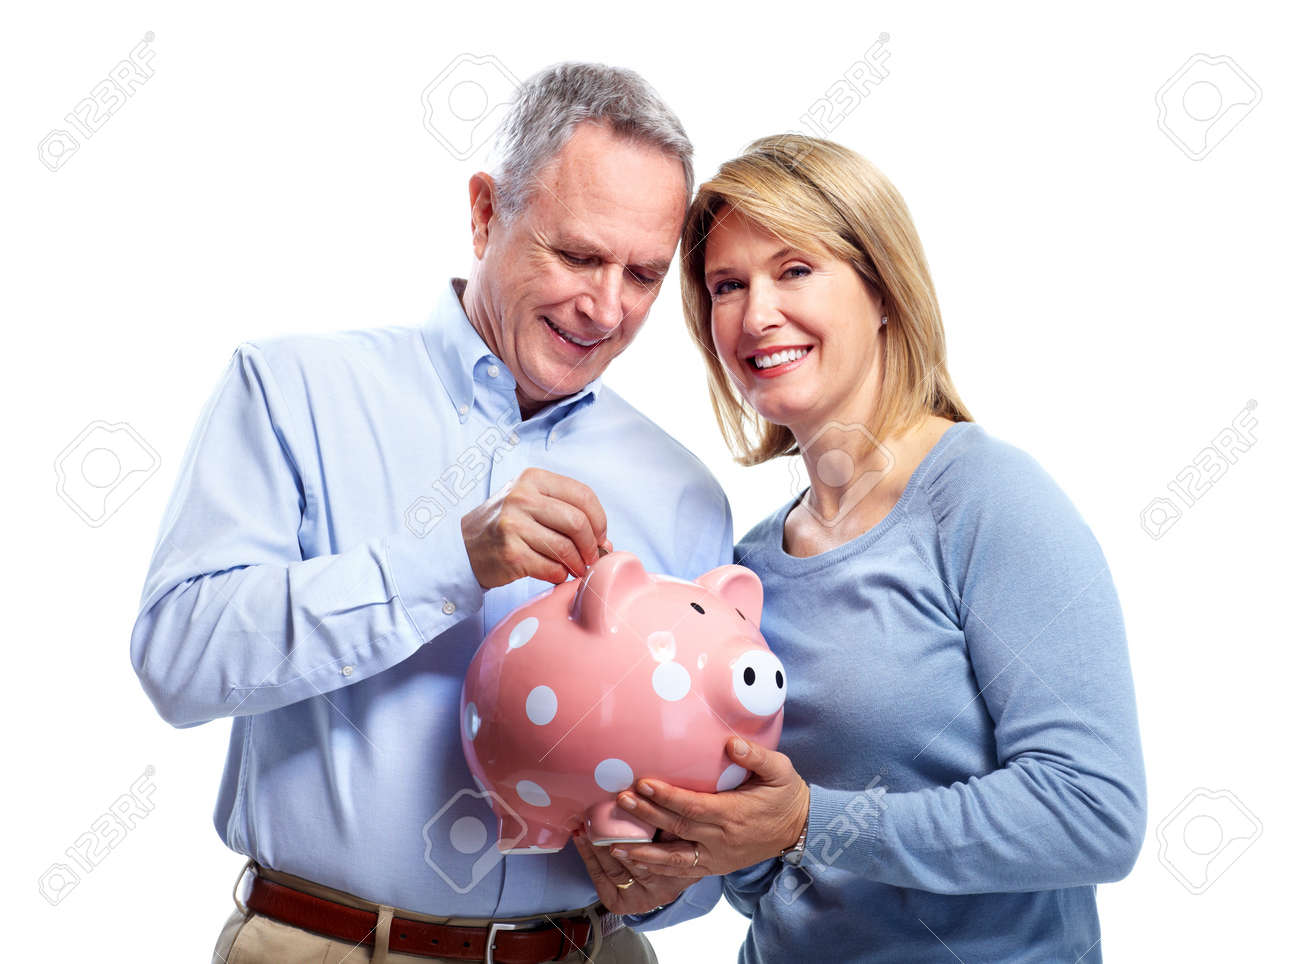 Couple with piggy bank. Stock Photo - 10857174